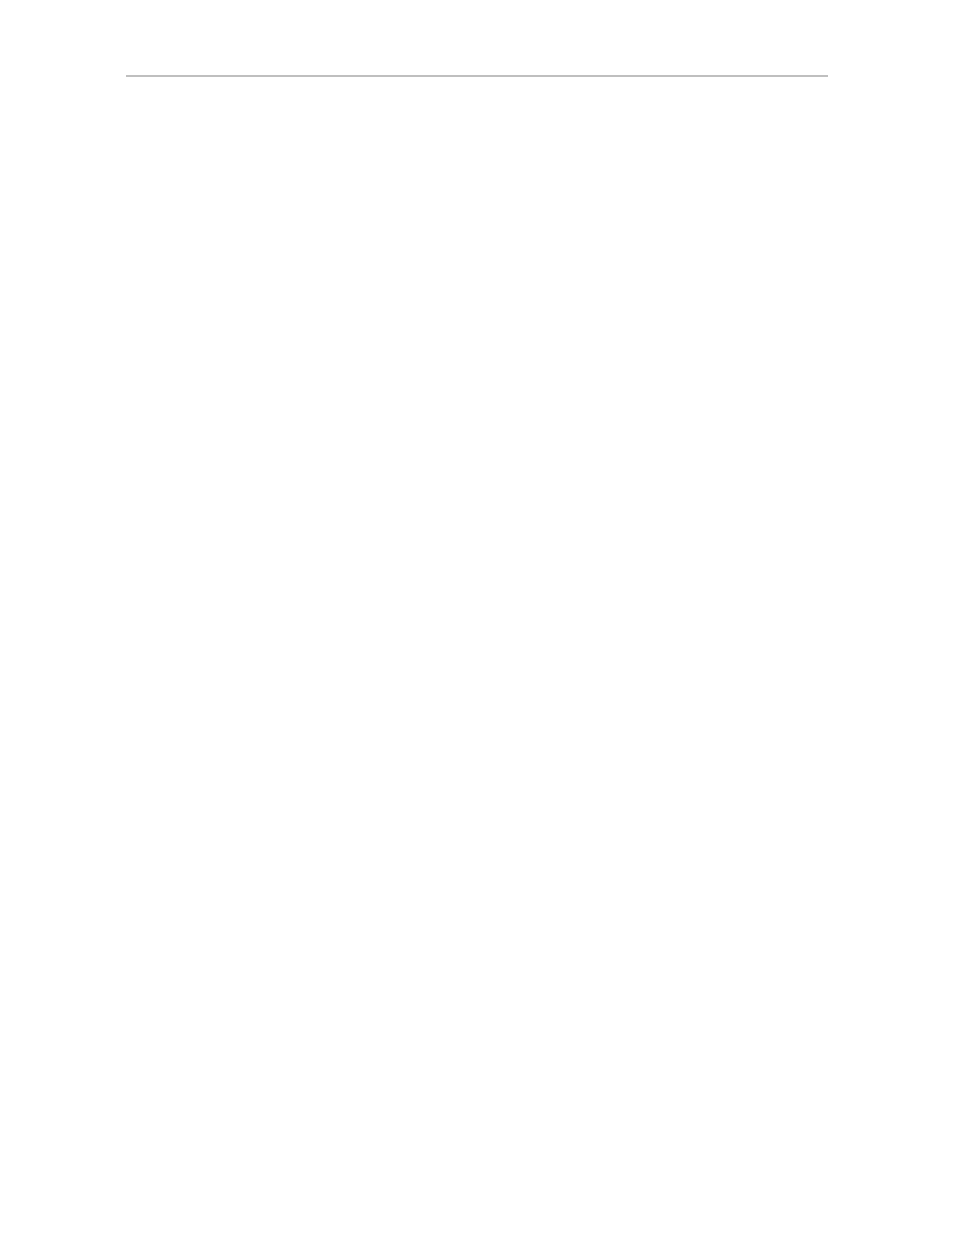 Installing 3ware drivers and software under vmware   Avago